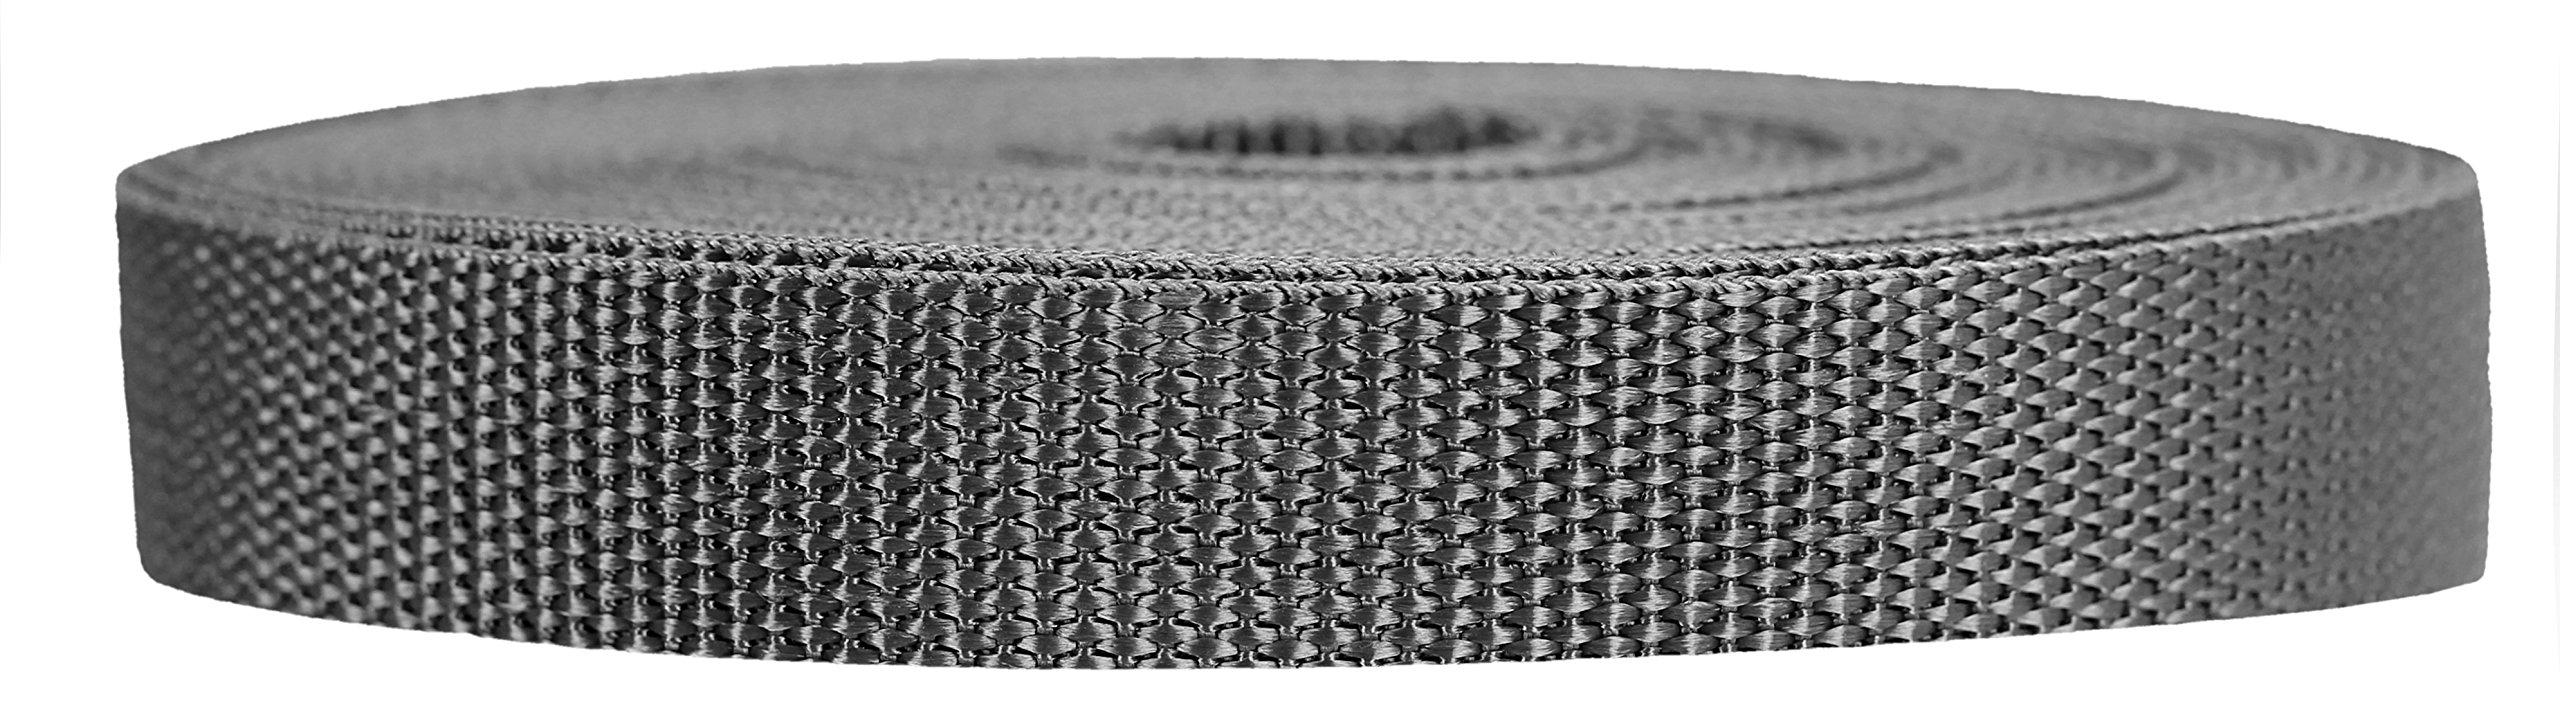 Strapworks Heavyweight Polypropylene Webbing - Heavy Duty Poly Strapping for Outdoor DIY Gear Repair, 3/4 Inch x 10 Yards, Charcoal by Strapworks